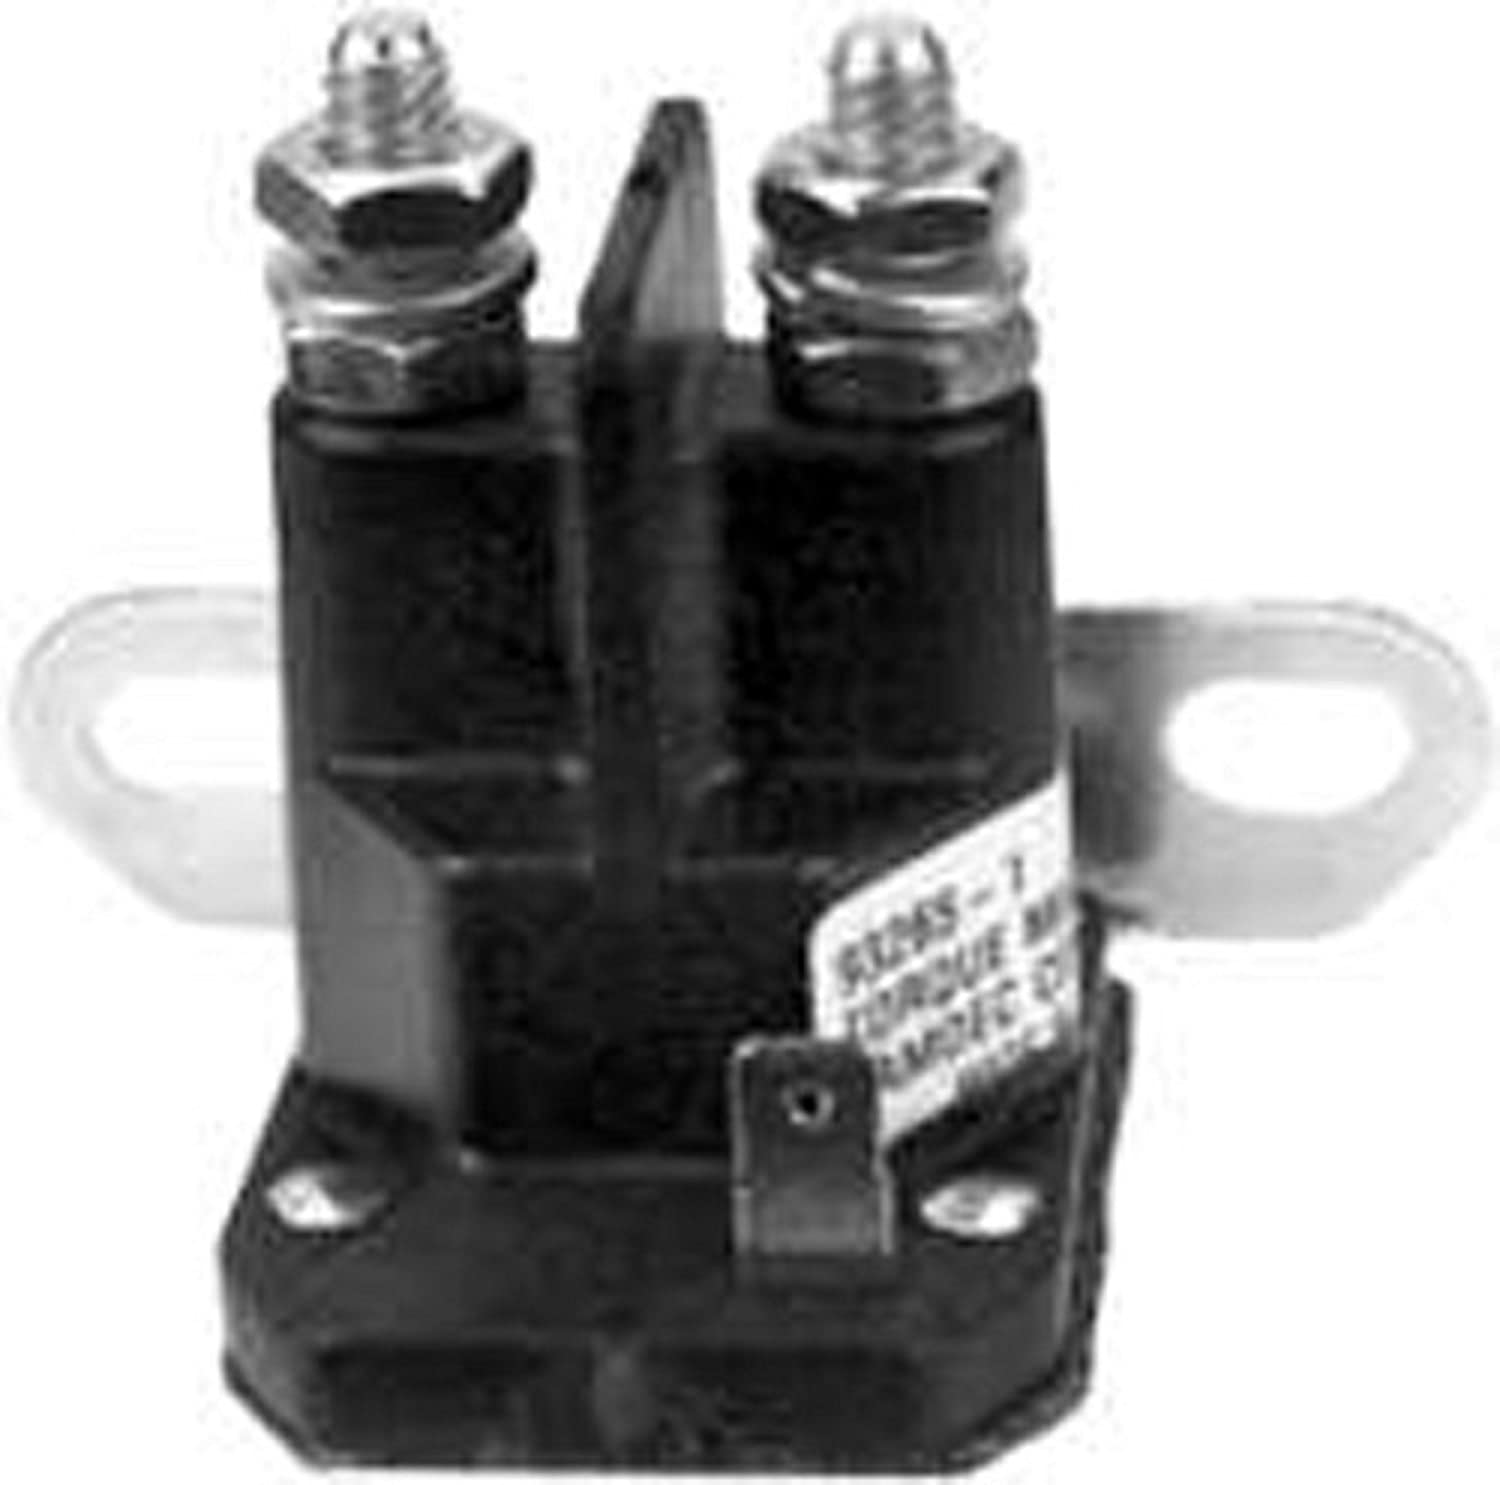 Mtd Ward Yard Man Starter Solenoid 725 1426 925 Troy Built 12 Volt Wiring Diagram 0771 Lawn Mower Tune Up Kits Garden Outdoor